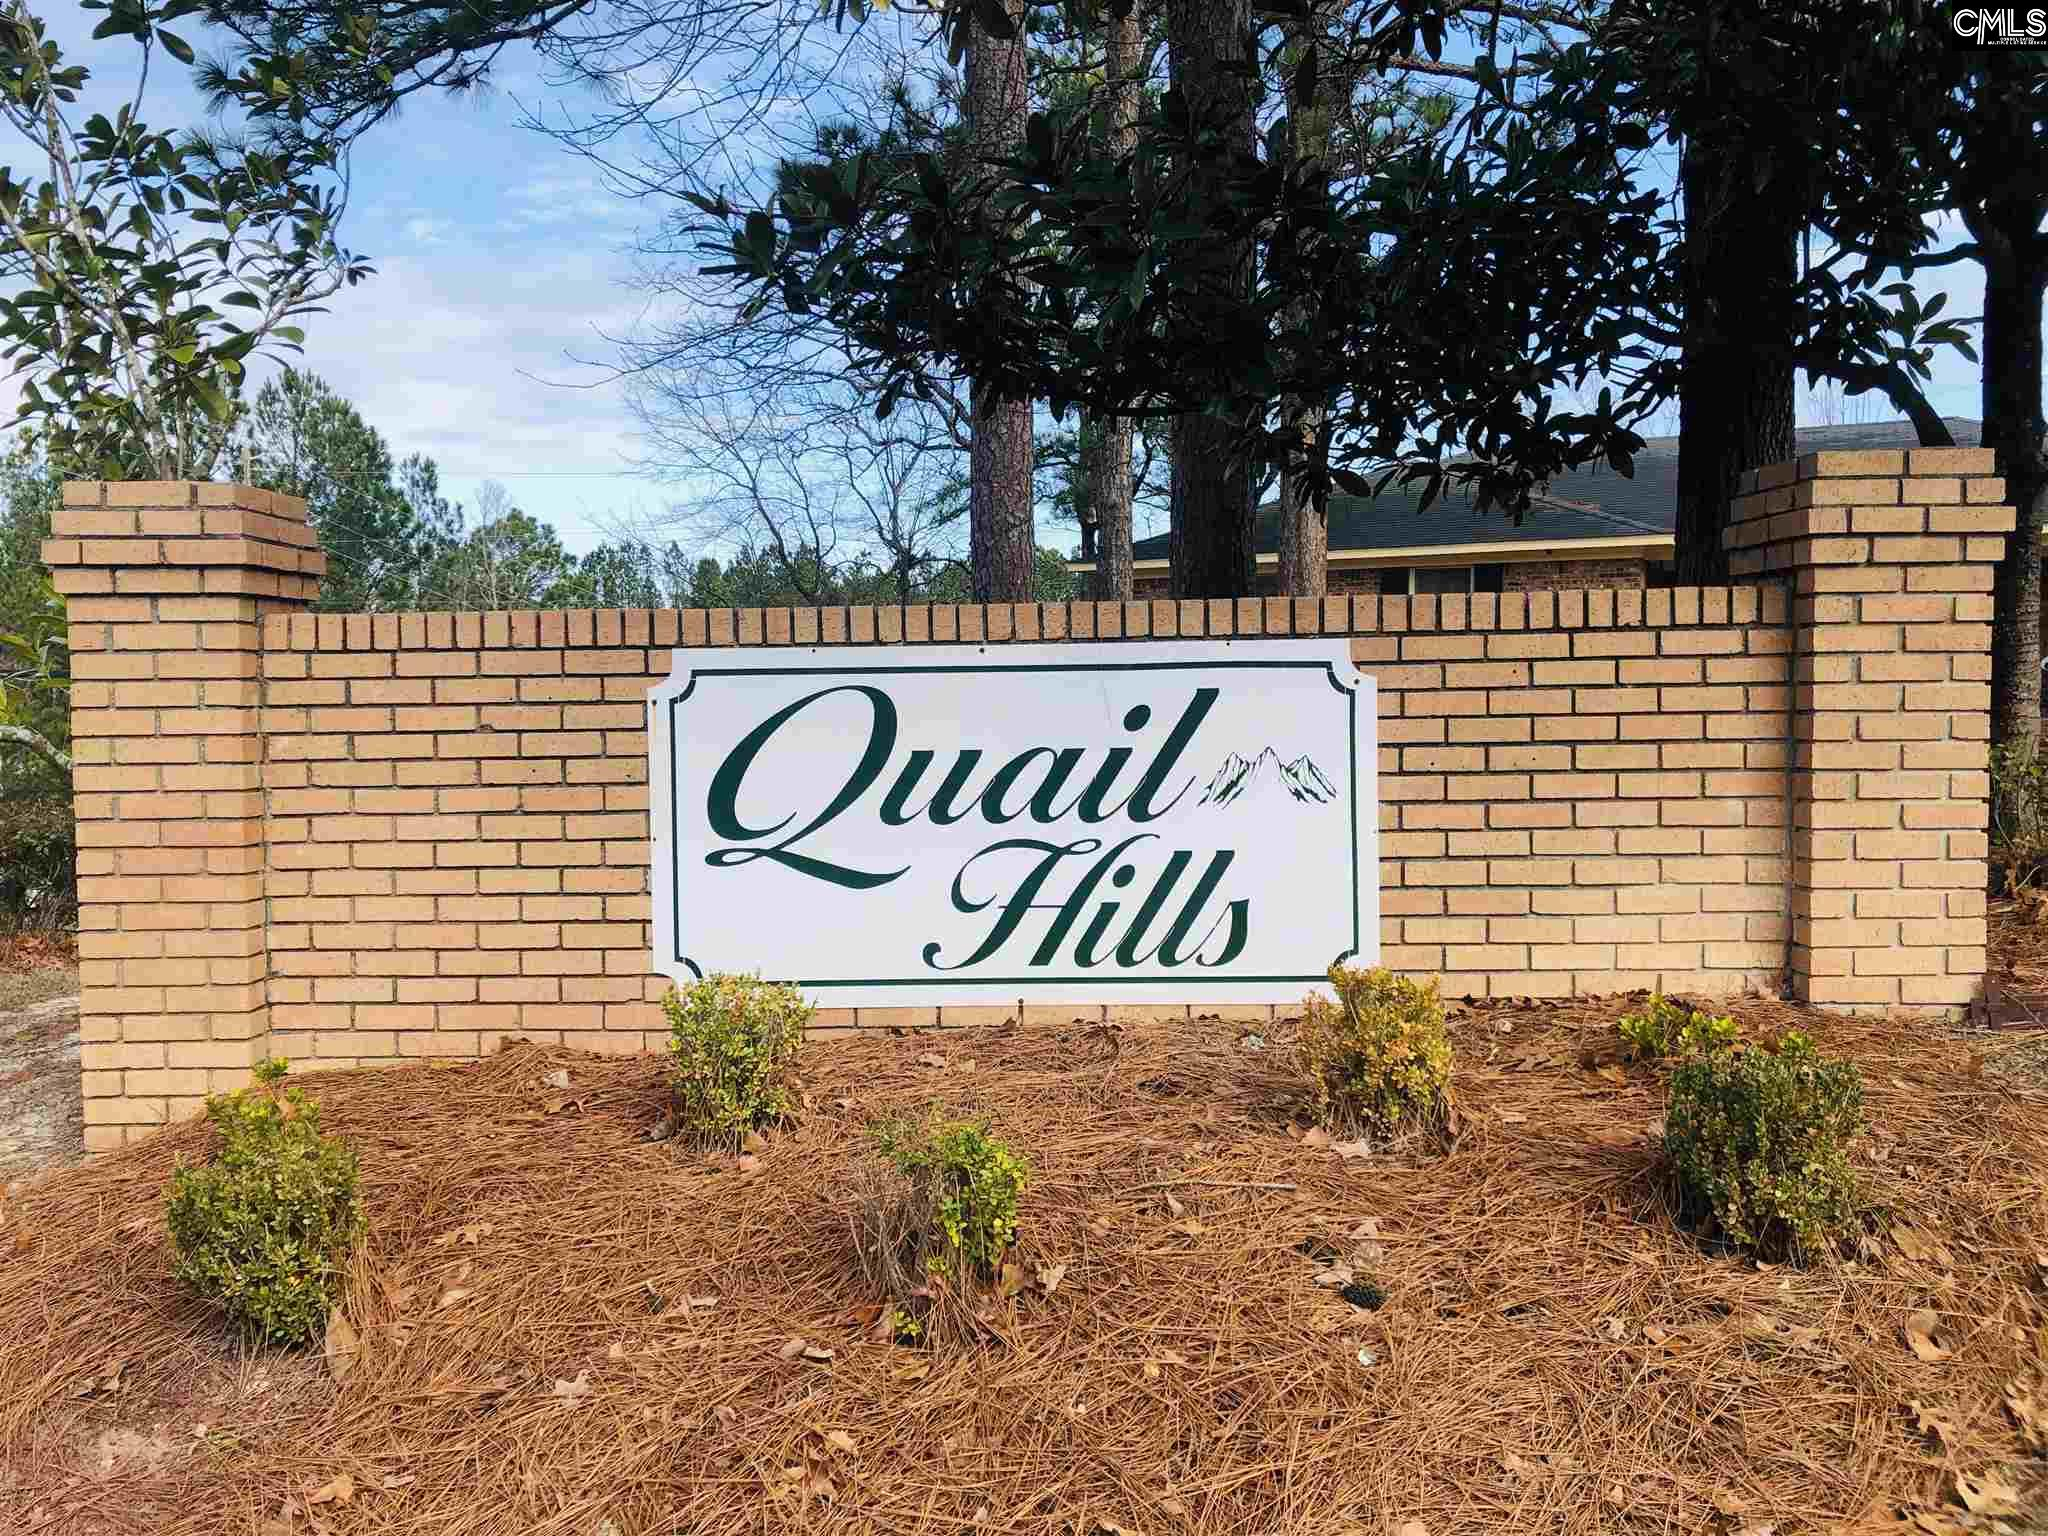 300 Quail Hills Hopkins, SC 29061-9453